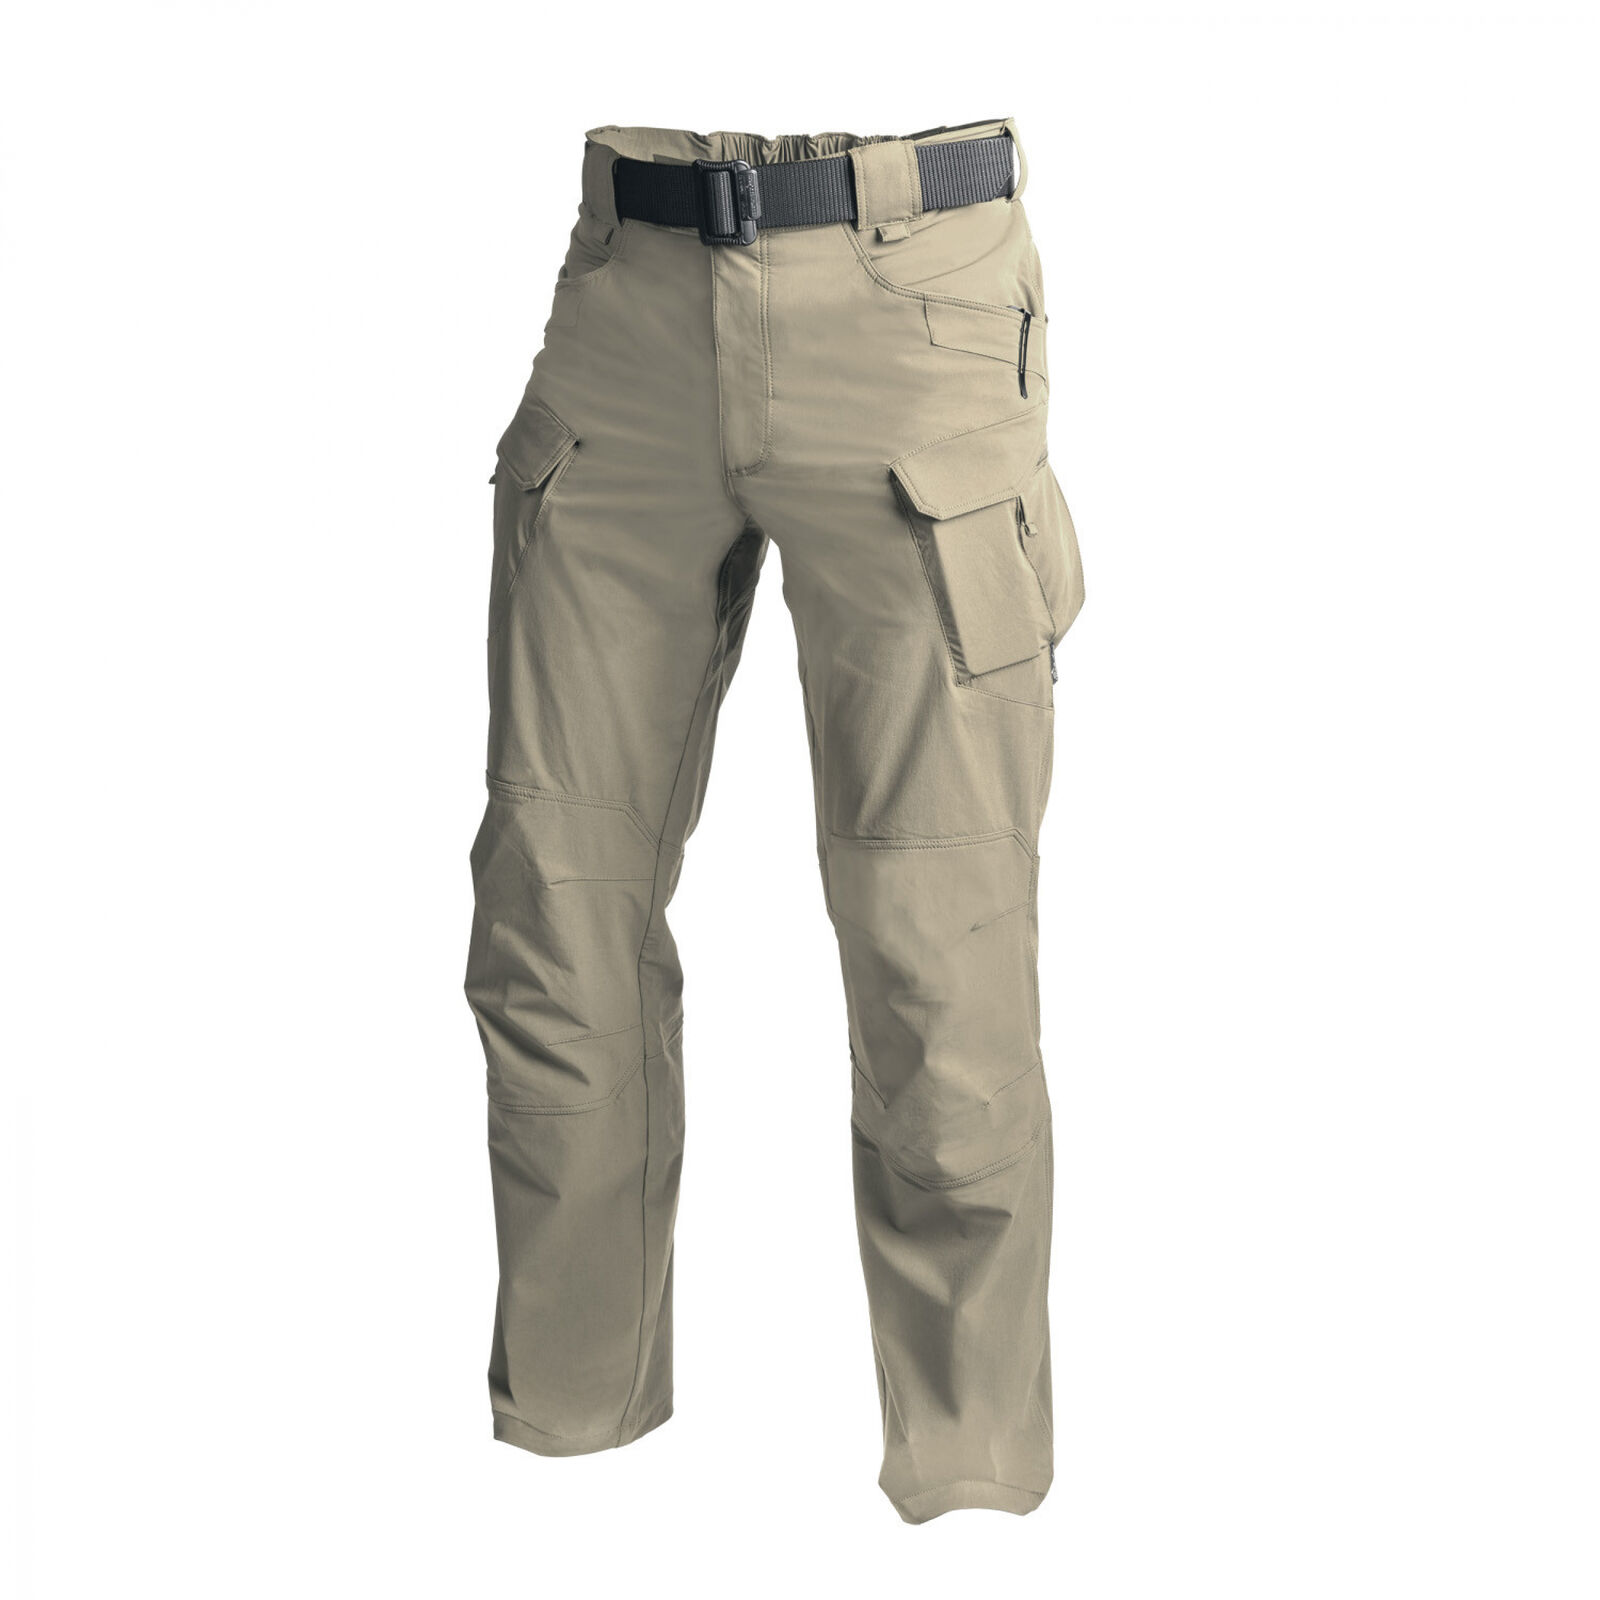 Helikon-Tex OTP Hose (Outdoor Tactical Pants) - VersaStretch - Khaki